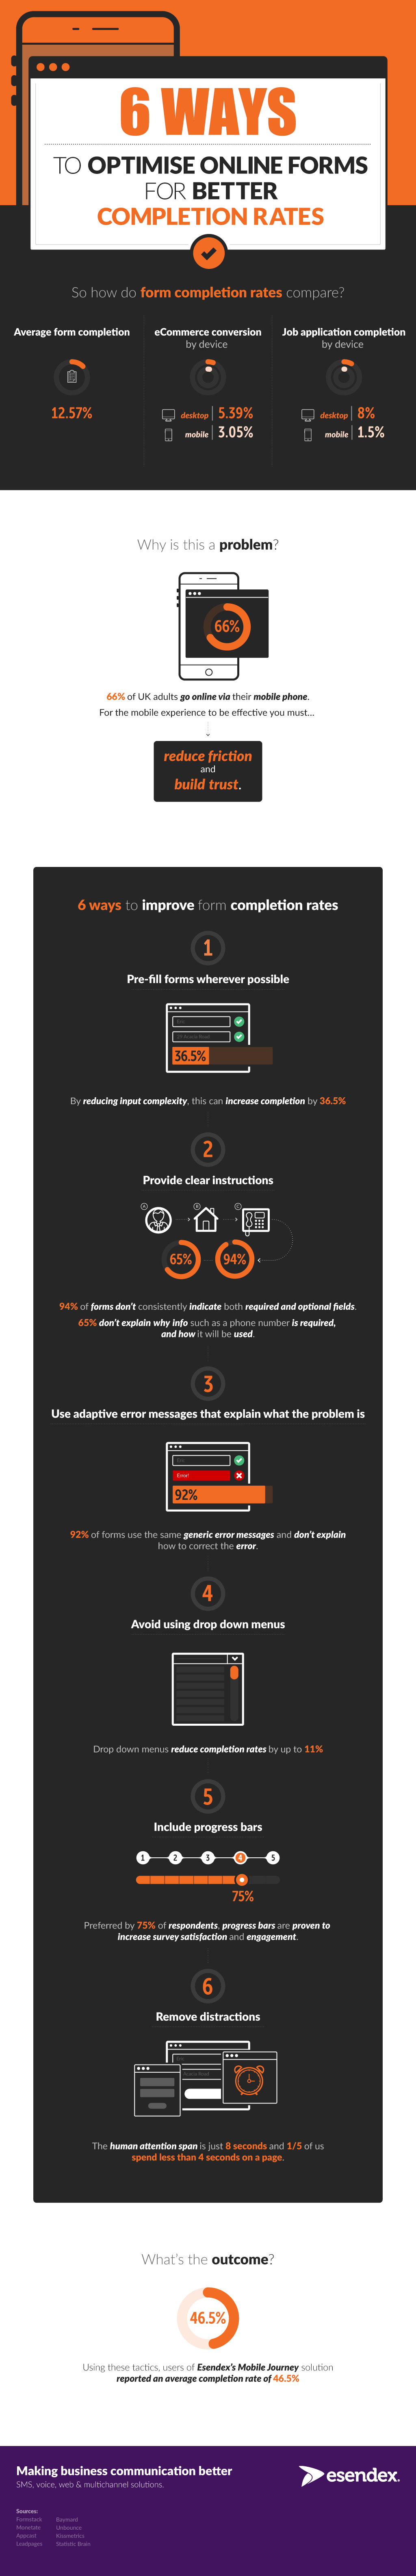 Mobile form conversion rate optimisation infographic